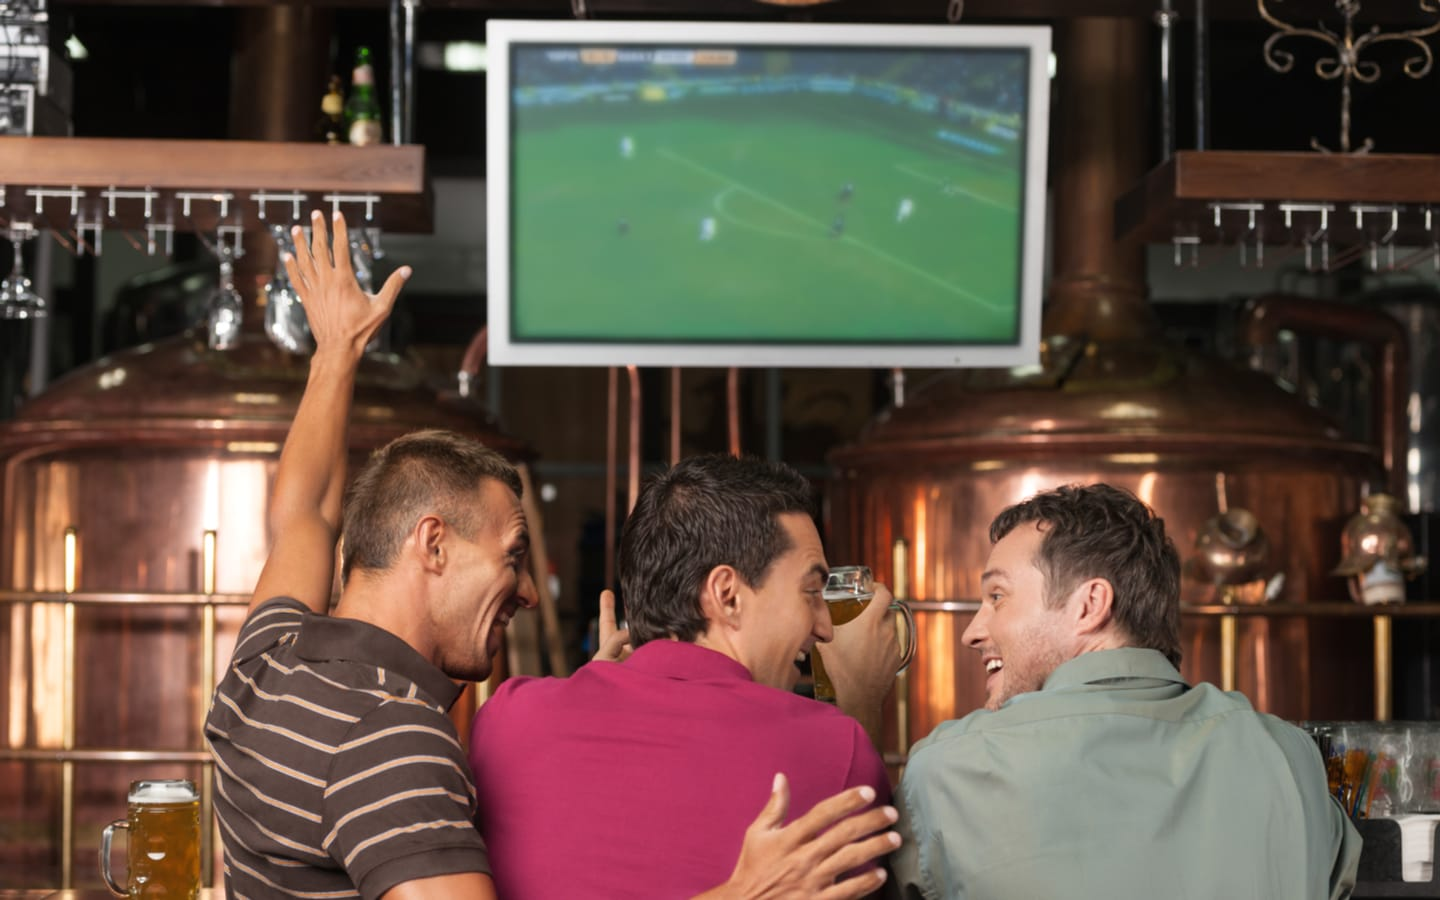 Pubs to watch the World Cup 2018 in Abu Dhabi